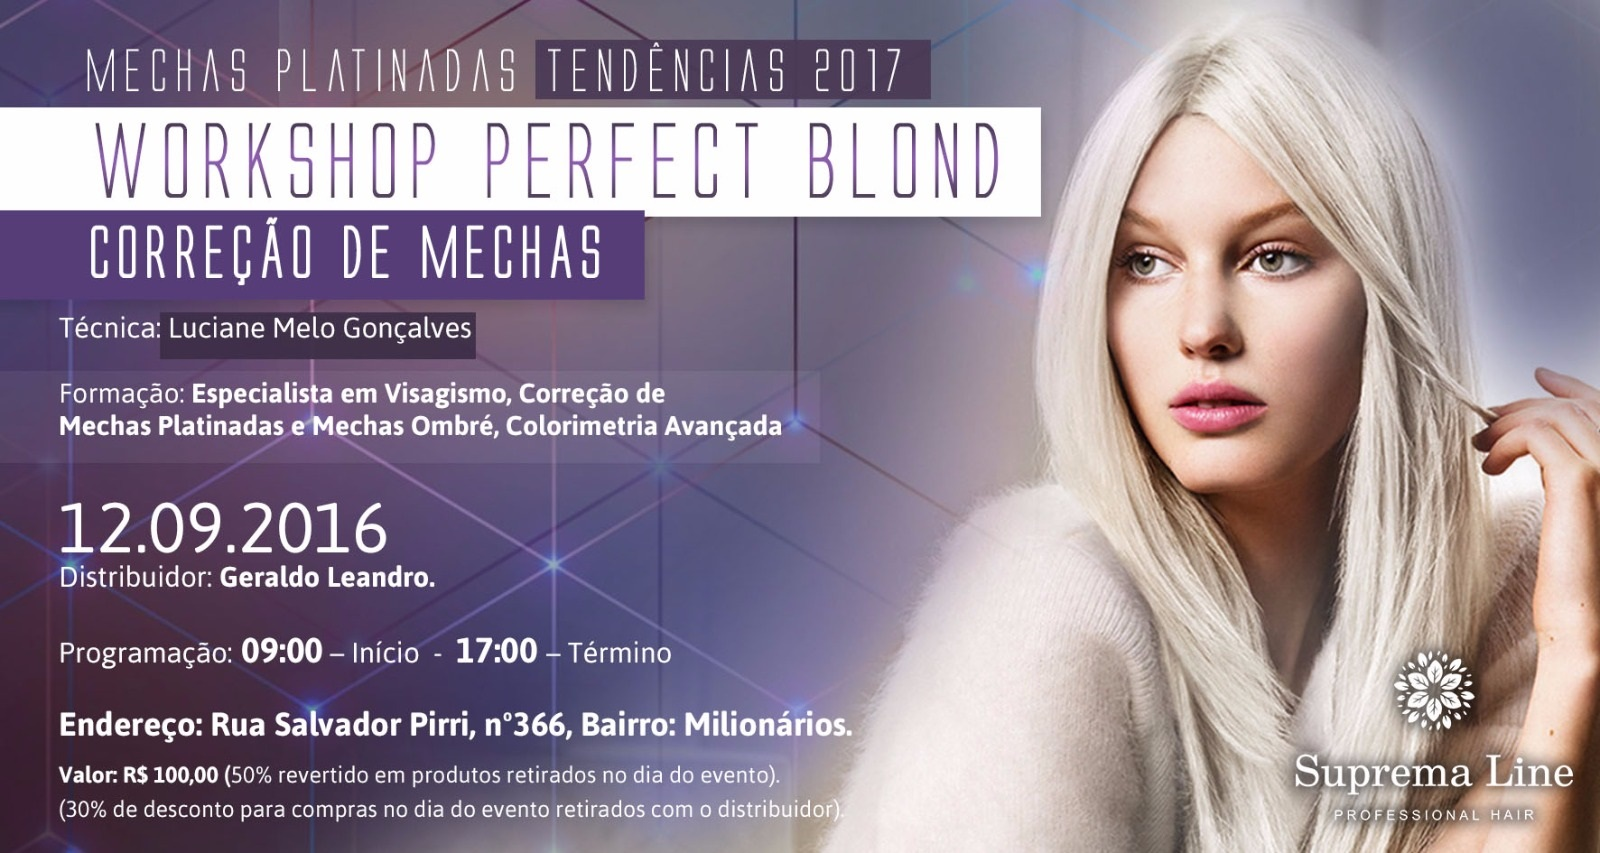 Workshop Perfect Blond: 12/09/2016 - Geraldo Leandro.jpg